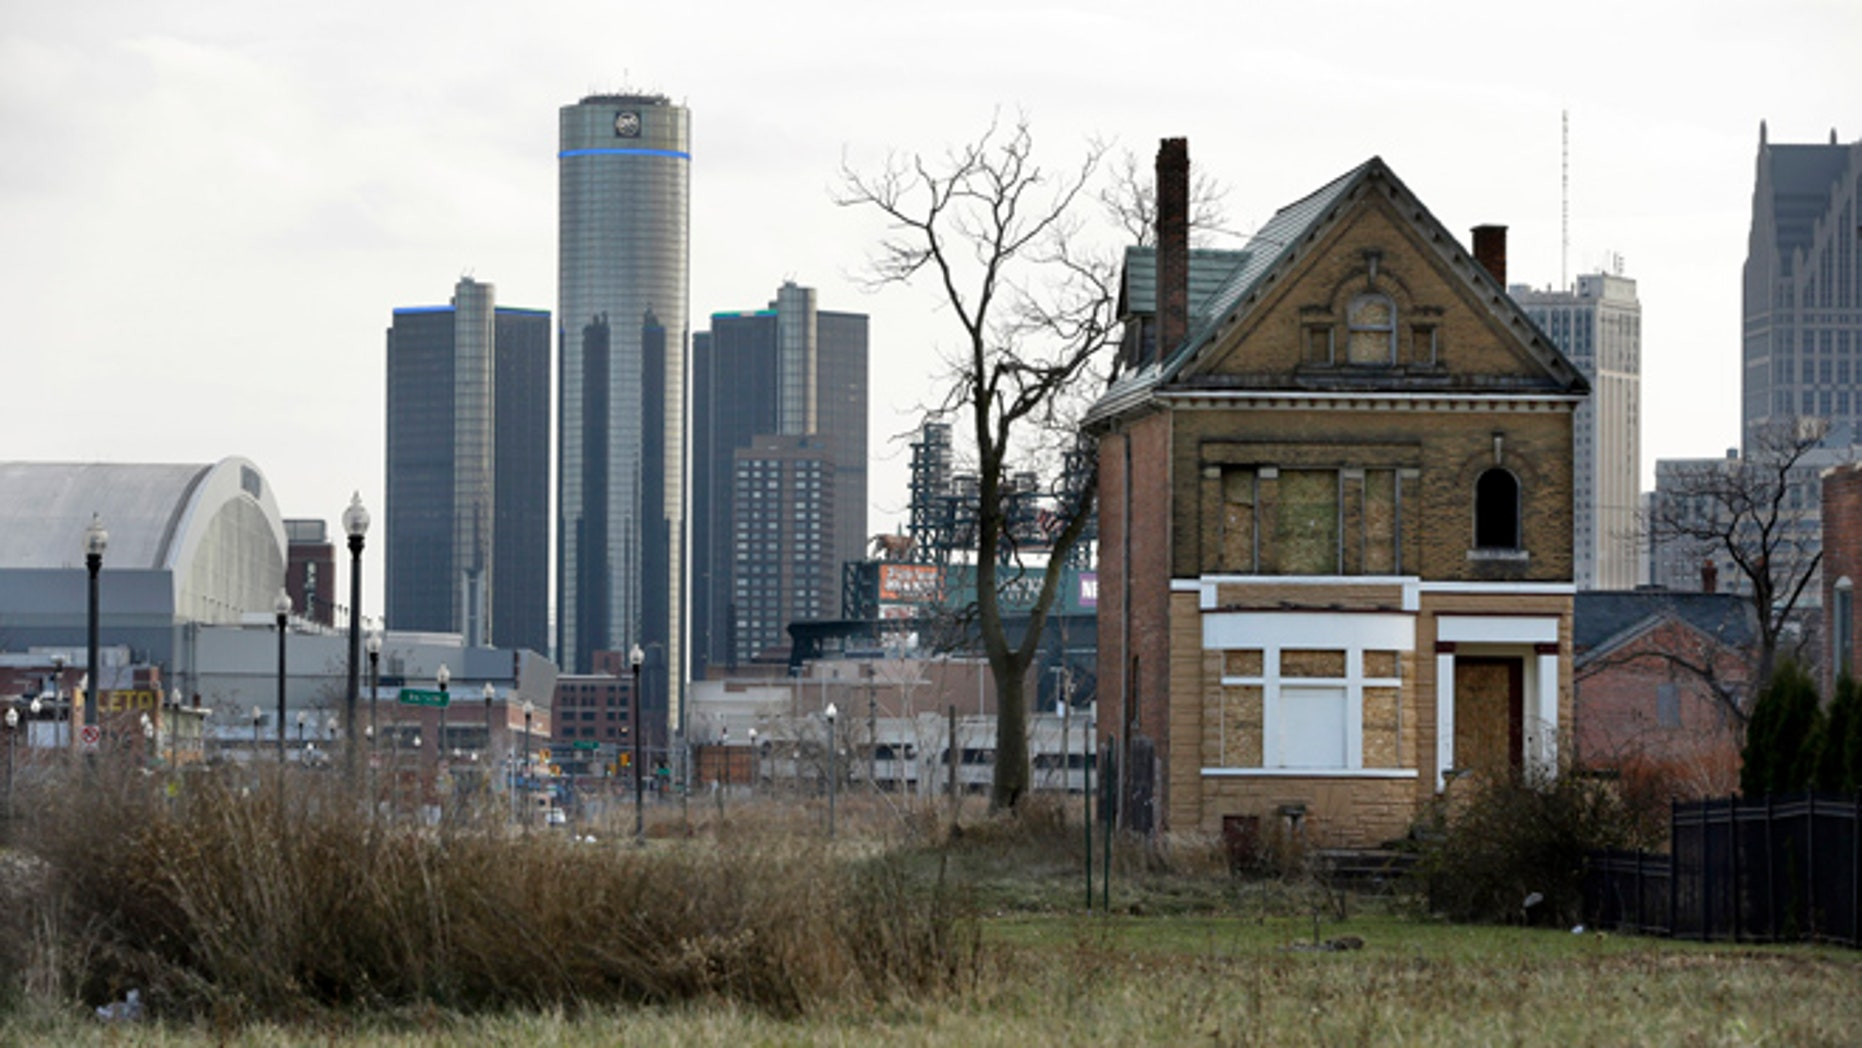 Dec. 2, 2013: Shown in the background is downtown Detroit.